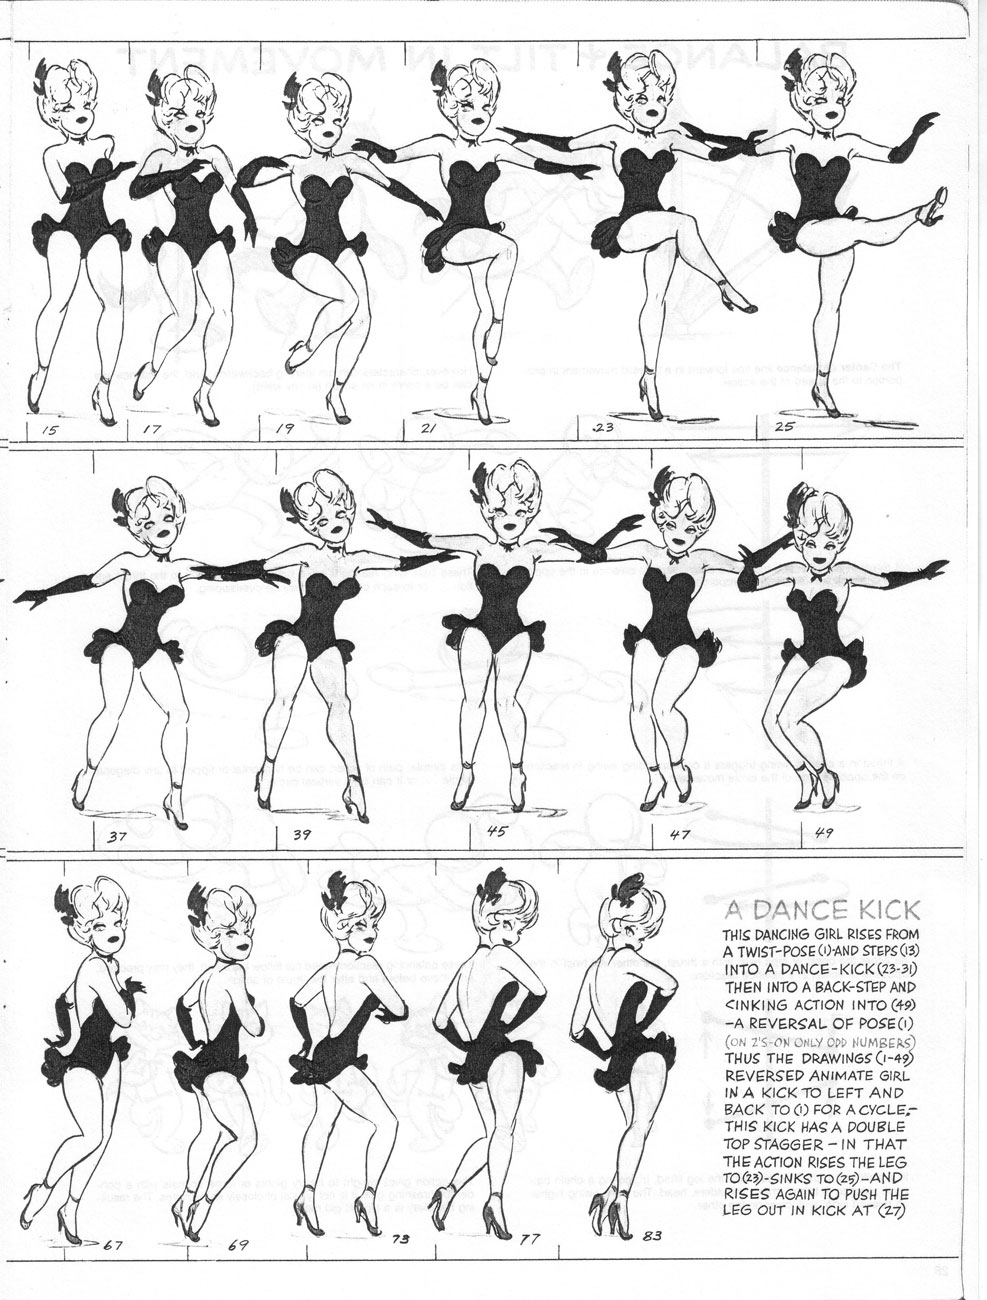 http://3.bp.blogspot.com/-k1VrCzbFmo4/TnO2a40aIFI/AAAAAAAAV9M/OCKwp9oU5u4/s1600/preston_blair_how_to_animate_film_cartoons_28.jpg